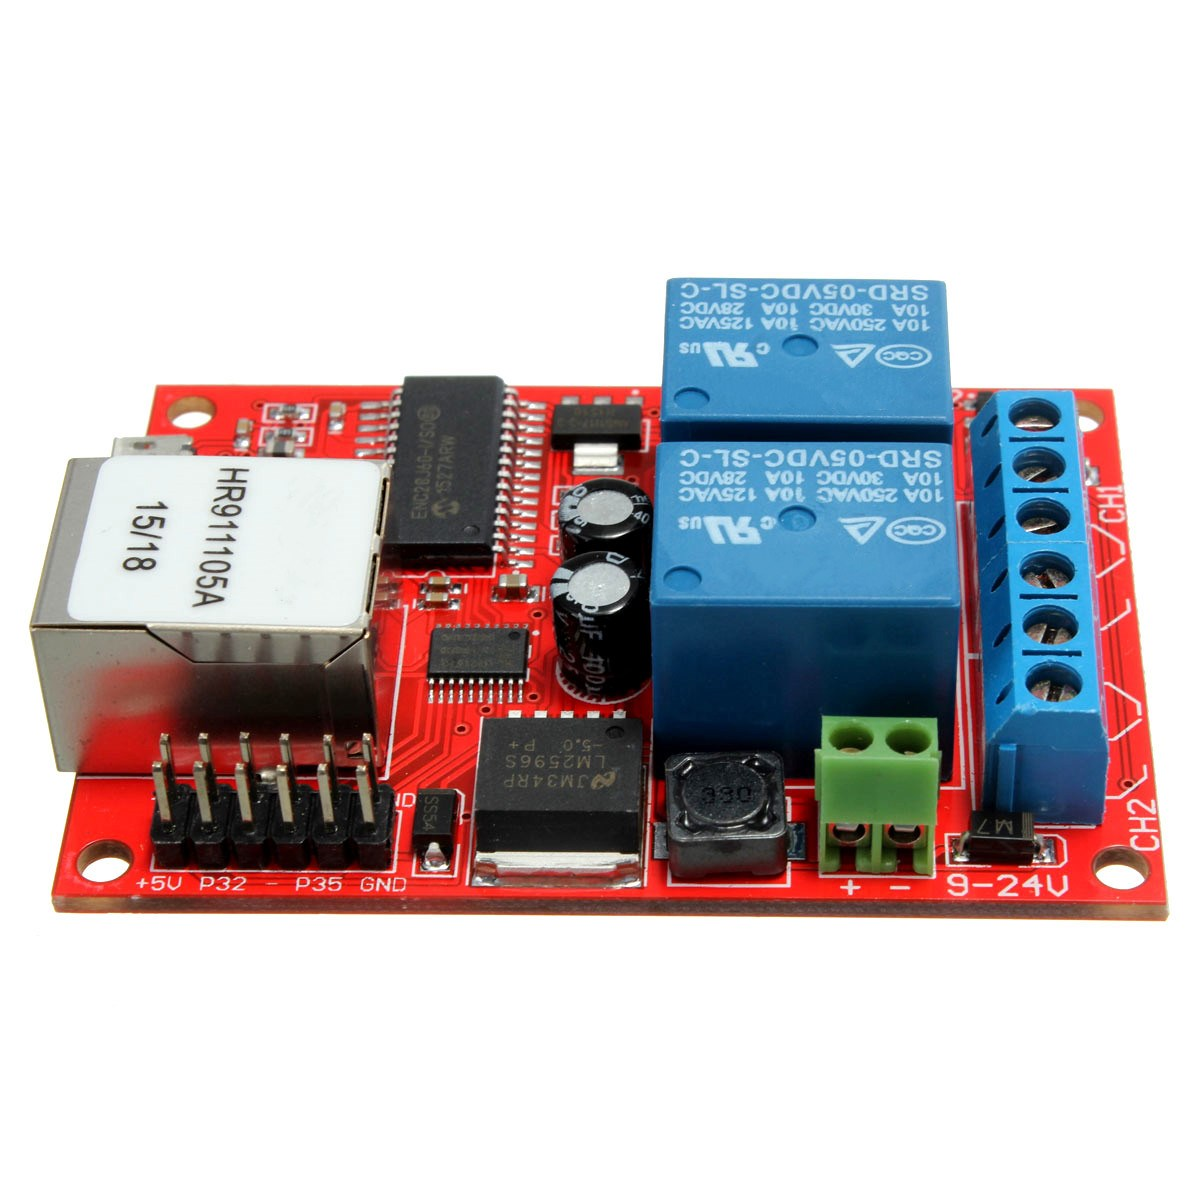 2016 Electronic kit Circuit Board LAN Ethernet 2-way Relay Board Delay Switch TCP/UDP Controller Module WEB server(China (Mainland))